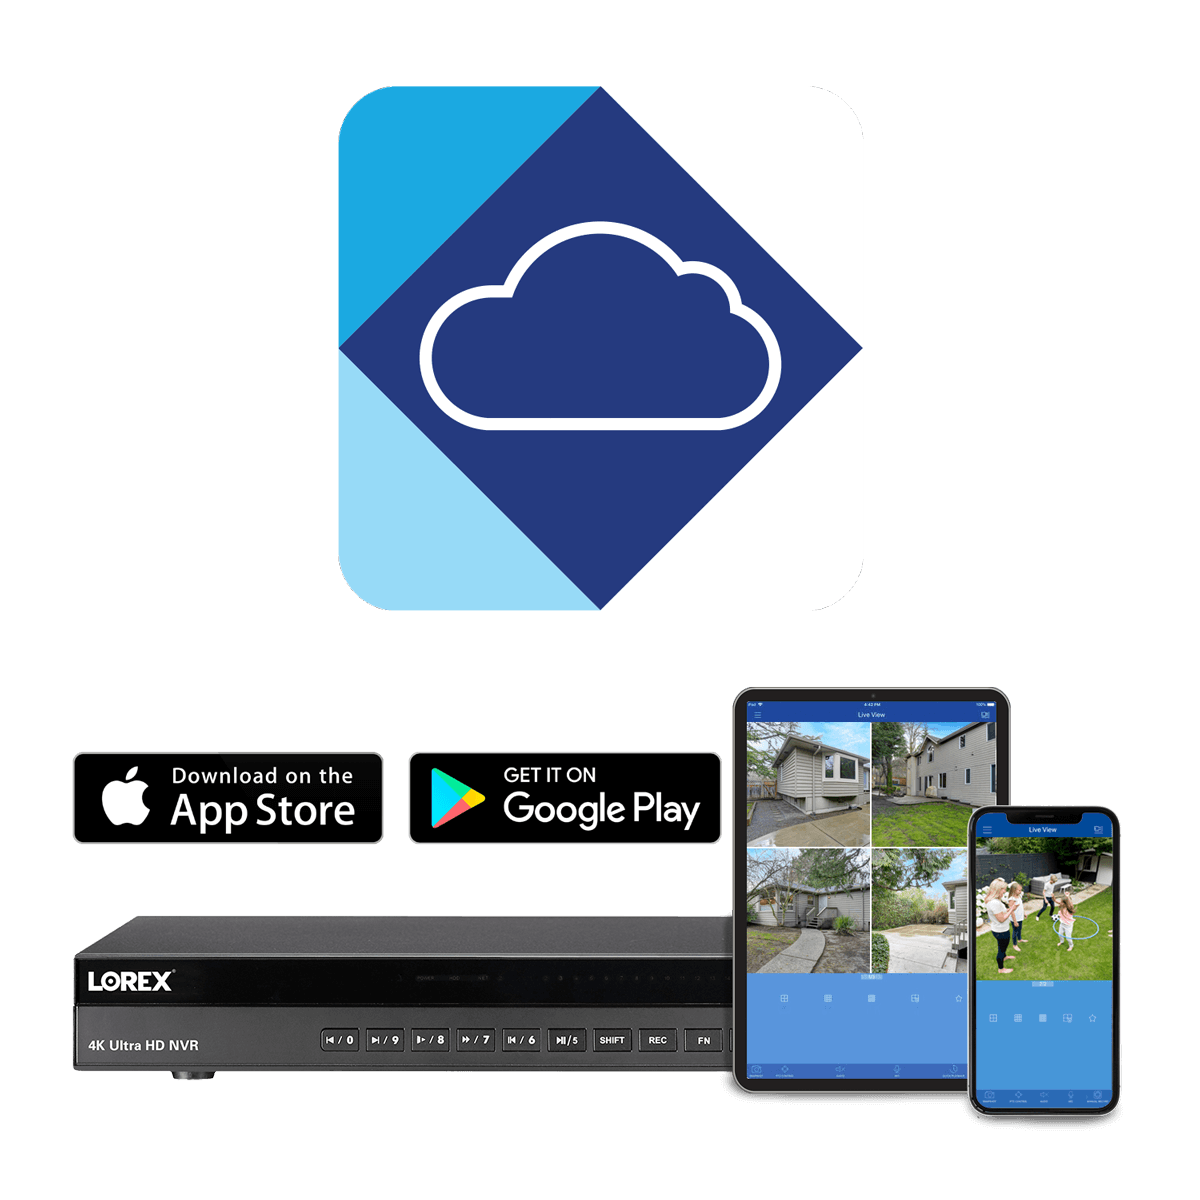 Lorex Cloud app keeps you connected to your security system through your smart phone